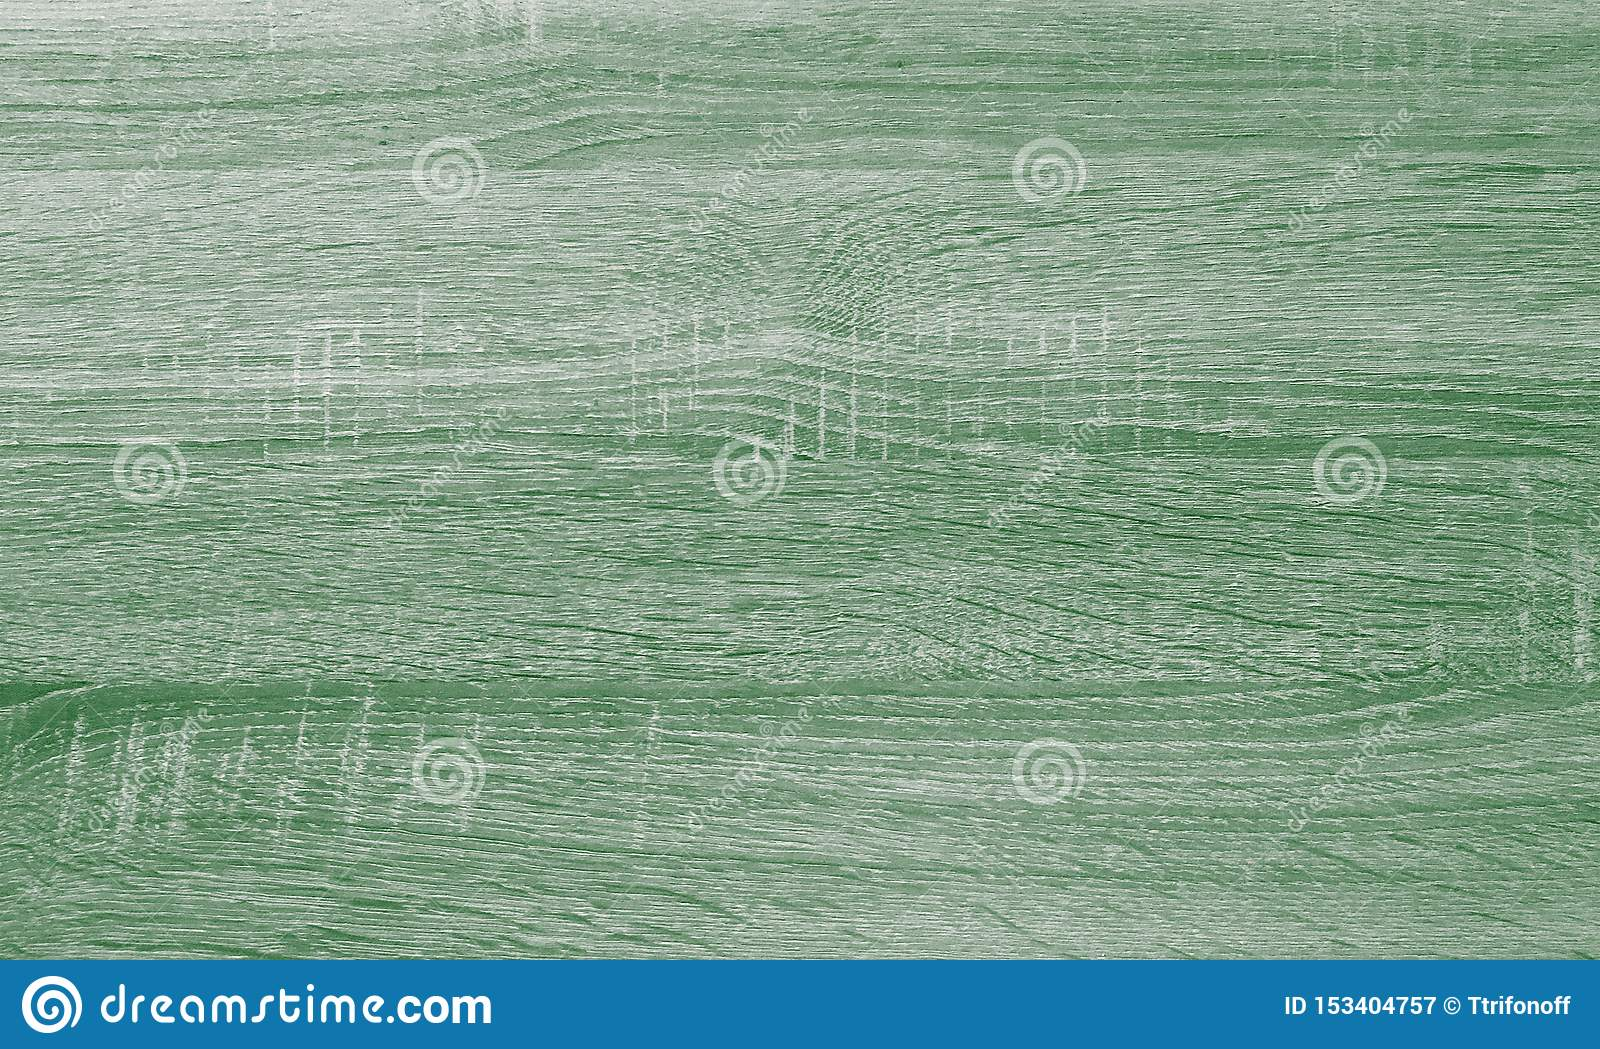 Green wood texture, light wooden abstract background